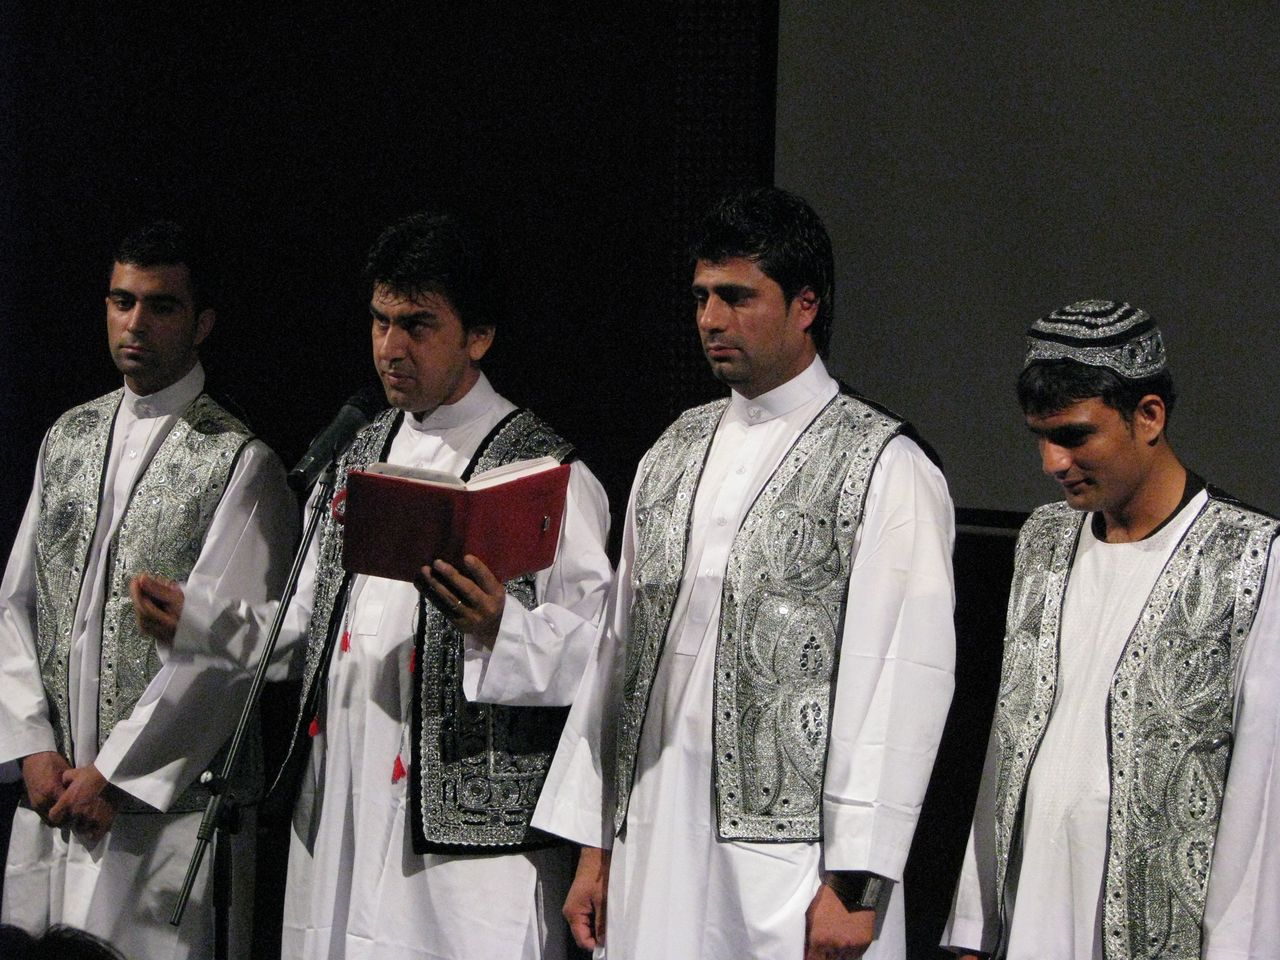 Intercultural festival: Afghanistan evening